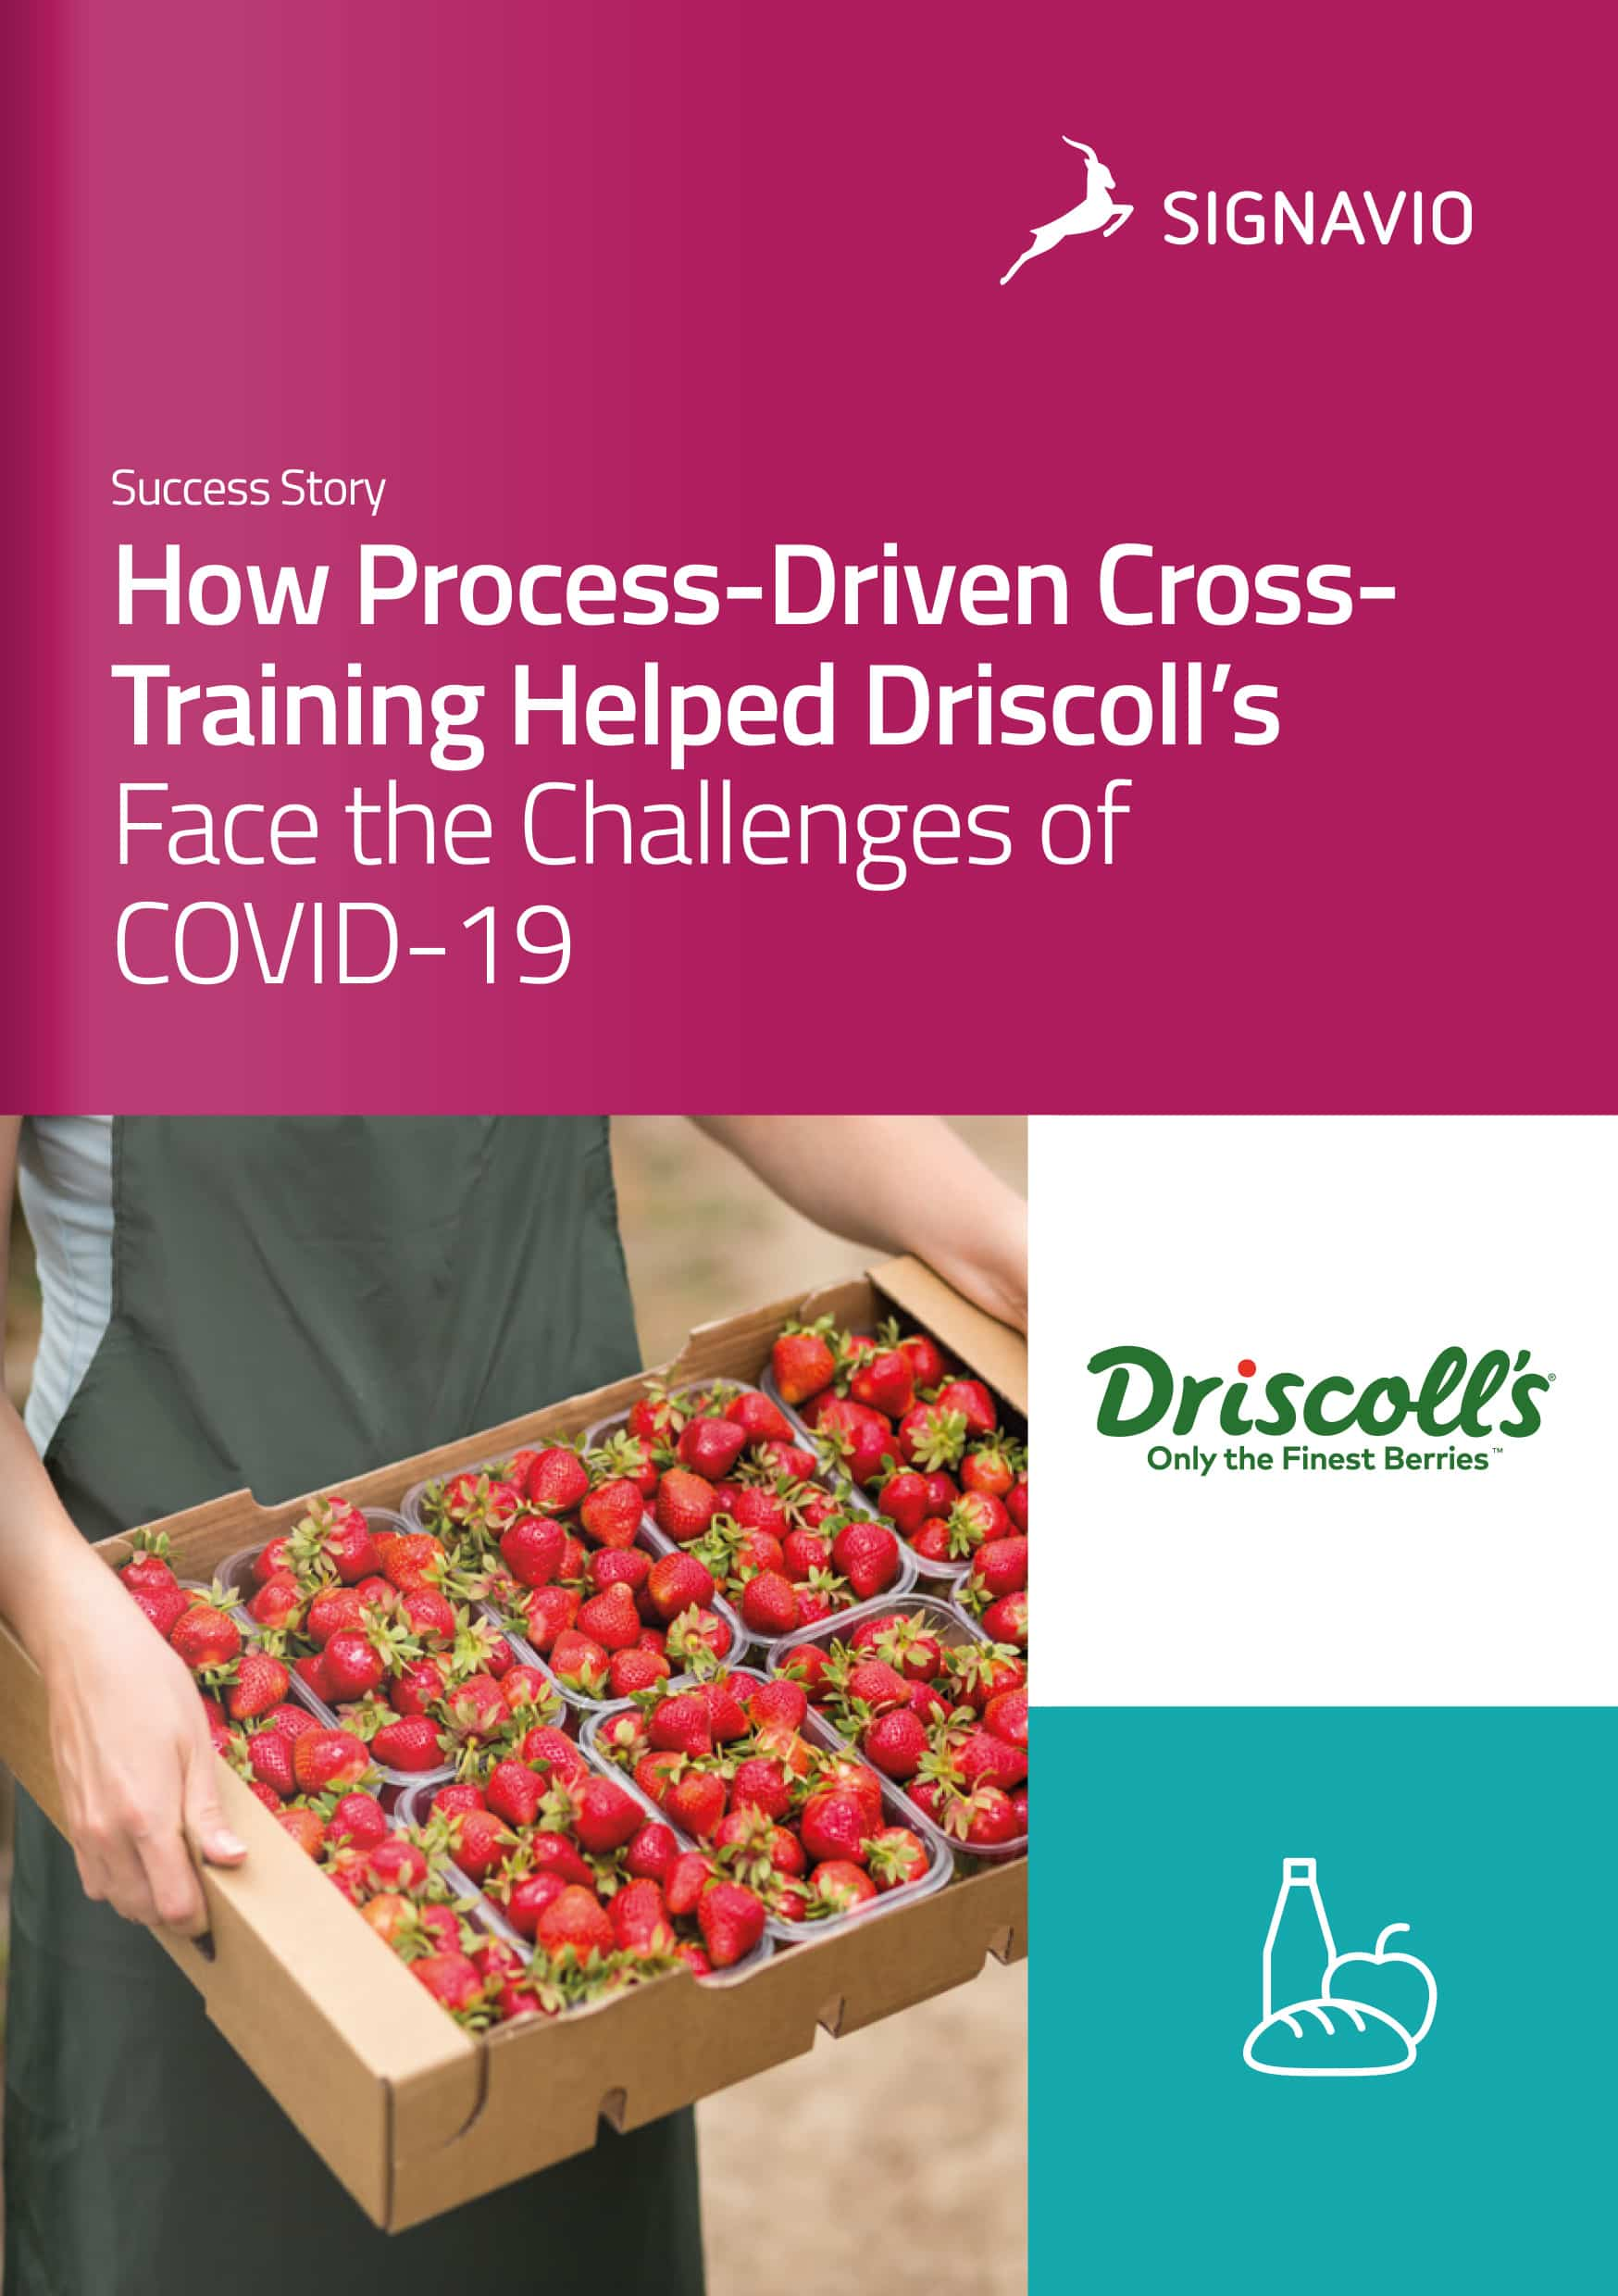 How Process-Driven Cross-Training Helped Driscoll's Face the Challenges of COVID-19 cover image